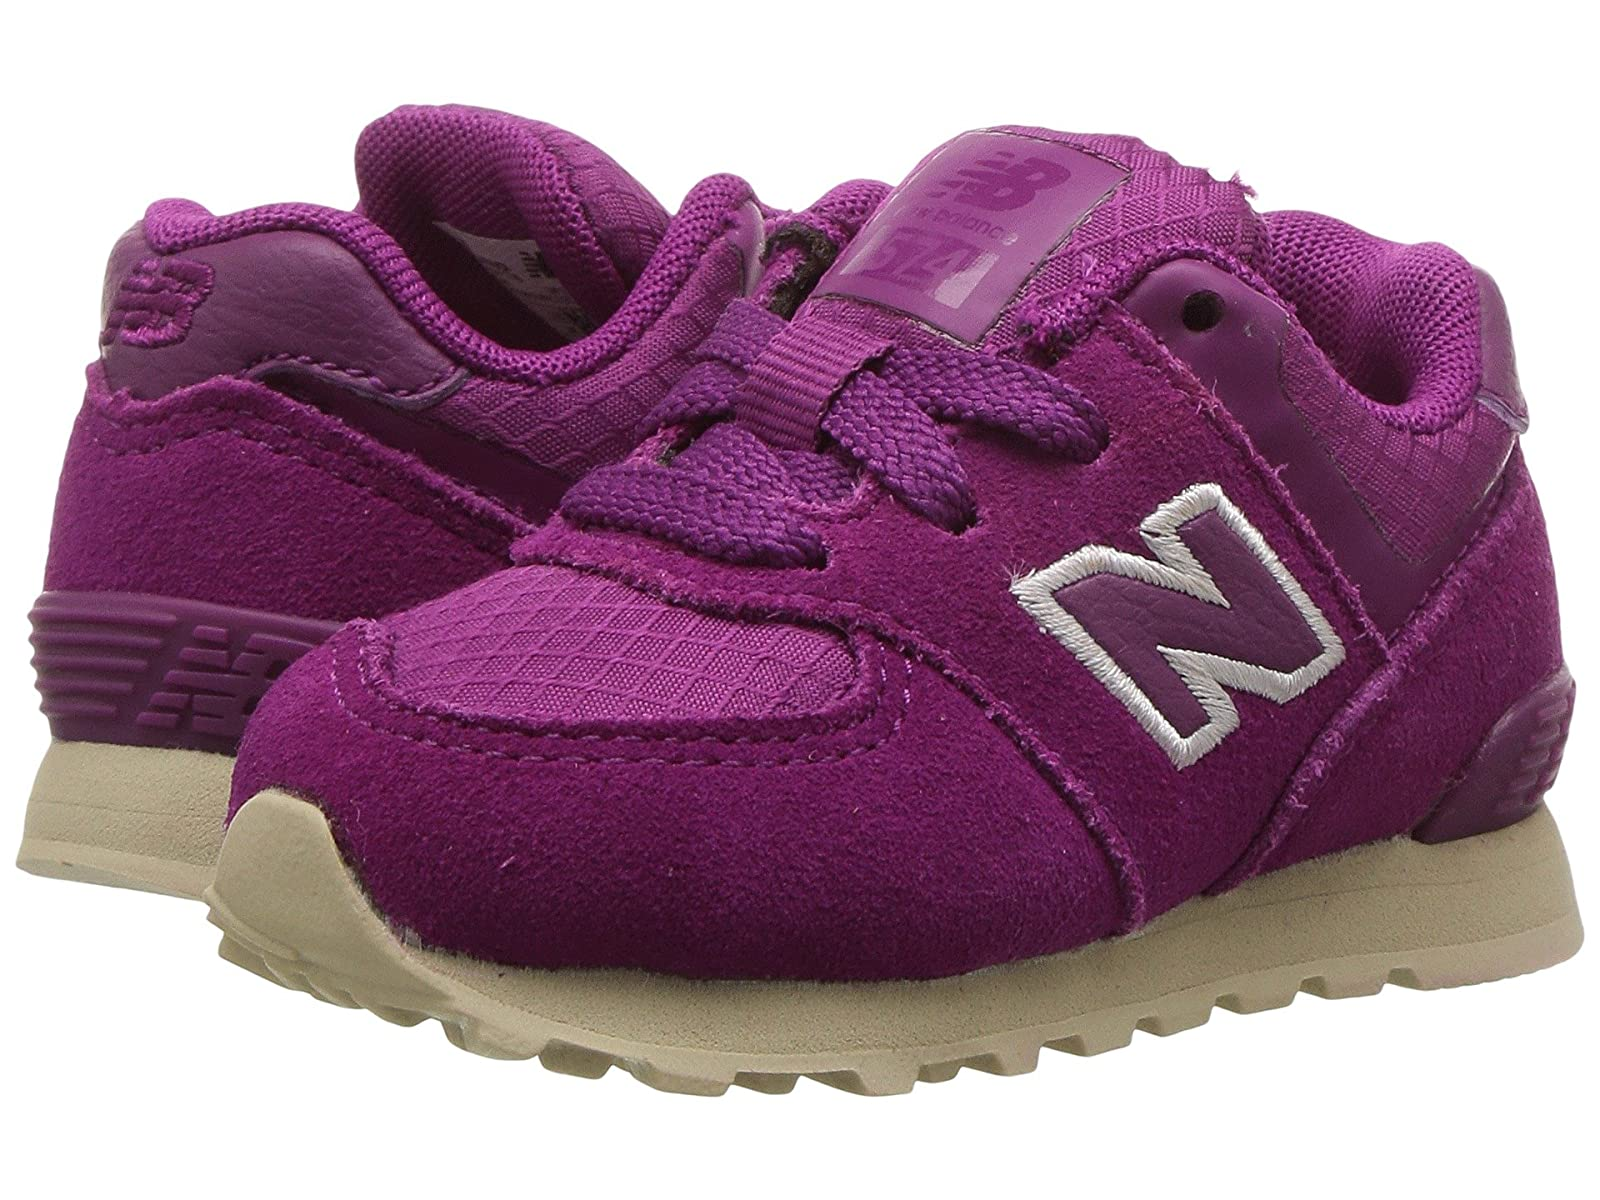 New Balance Kids KL574v1I (Infant/Toddler)Cheap and distinctive eye-catching shoes